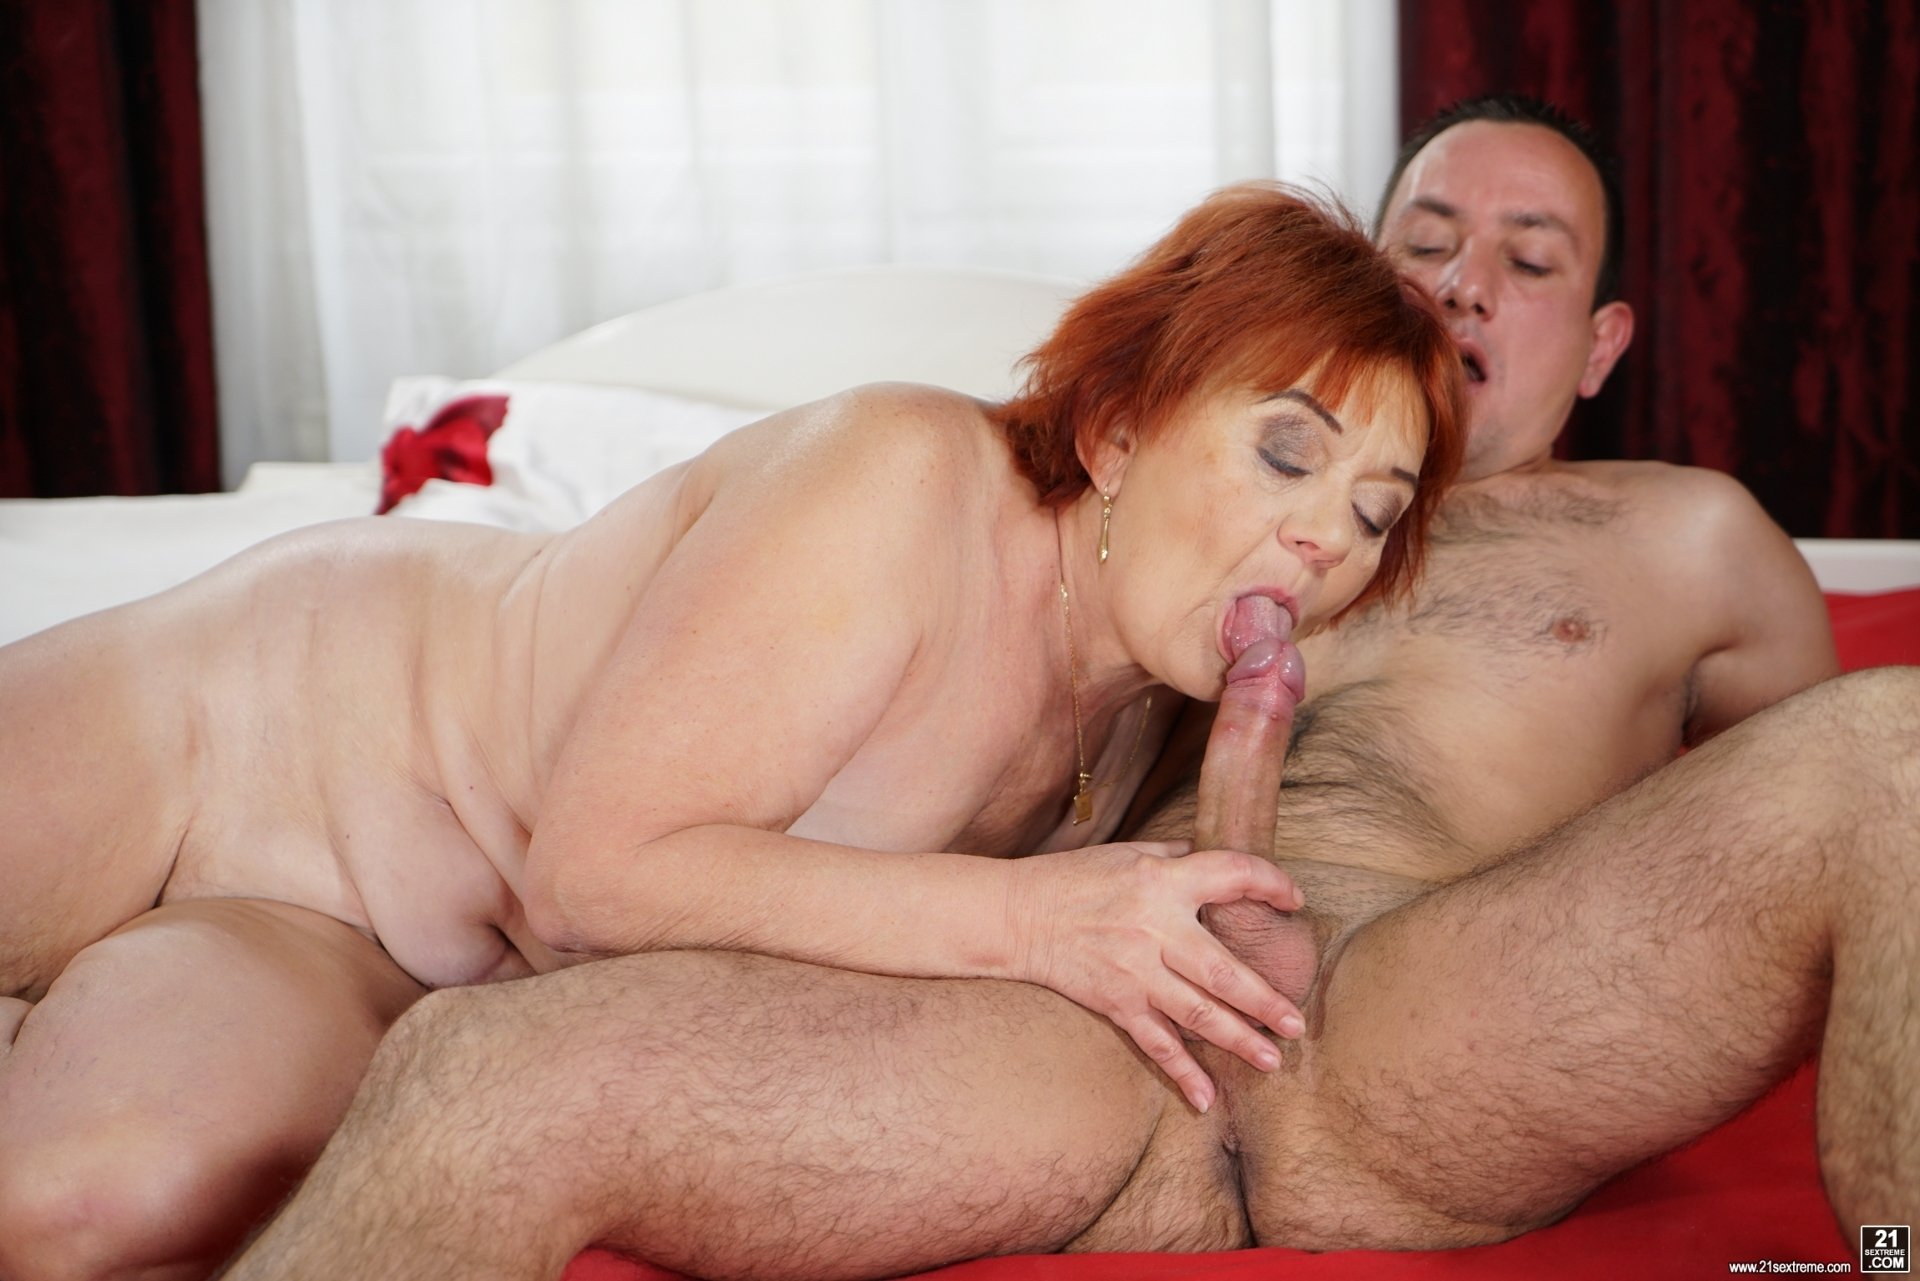 Wife impregnation with friend